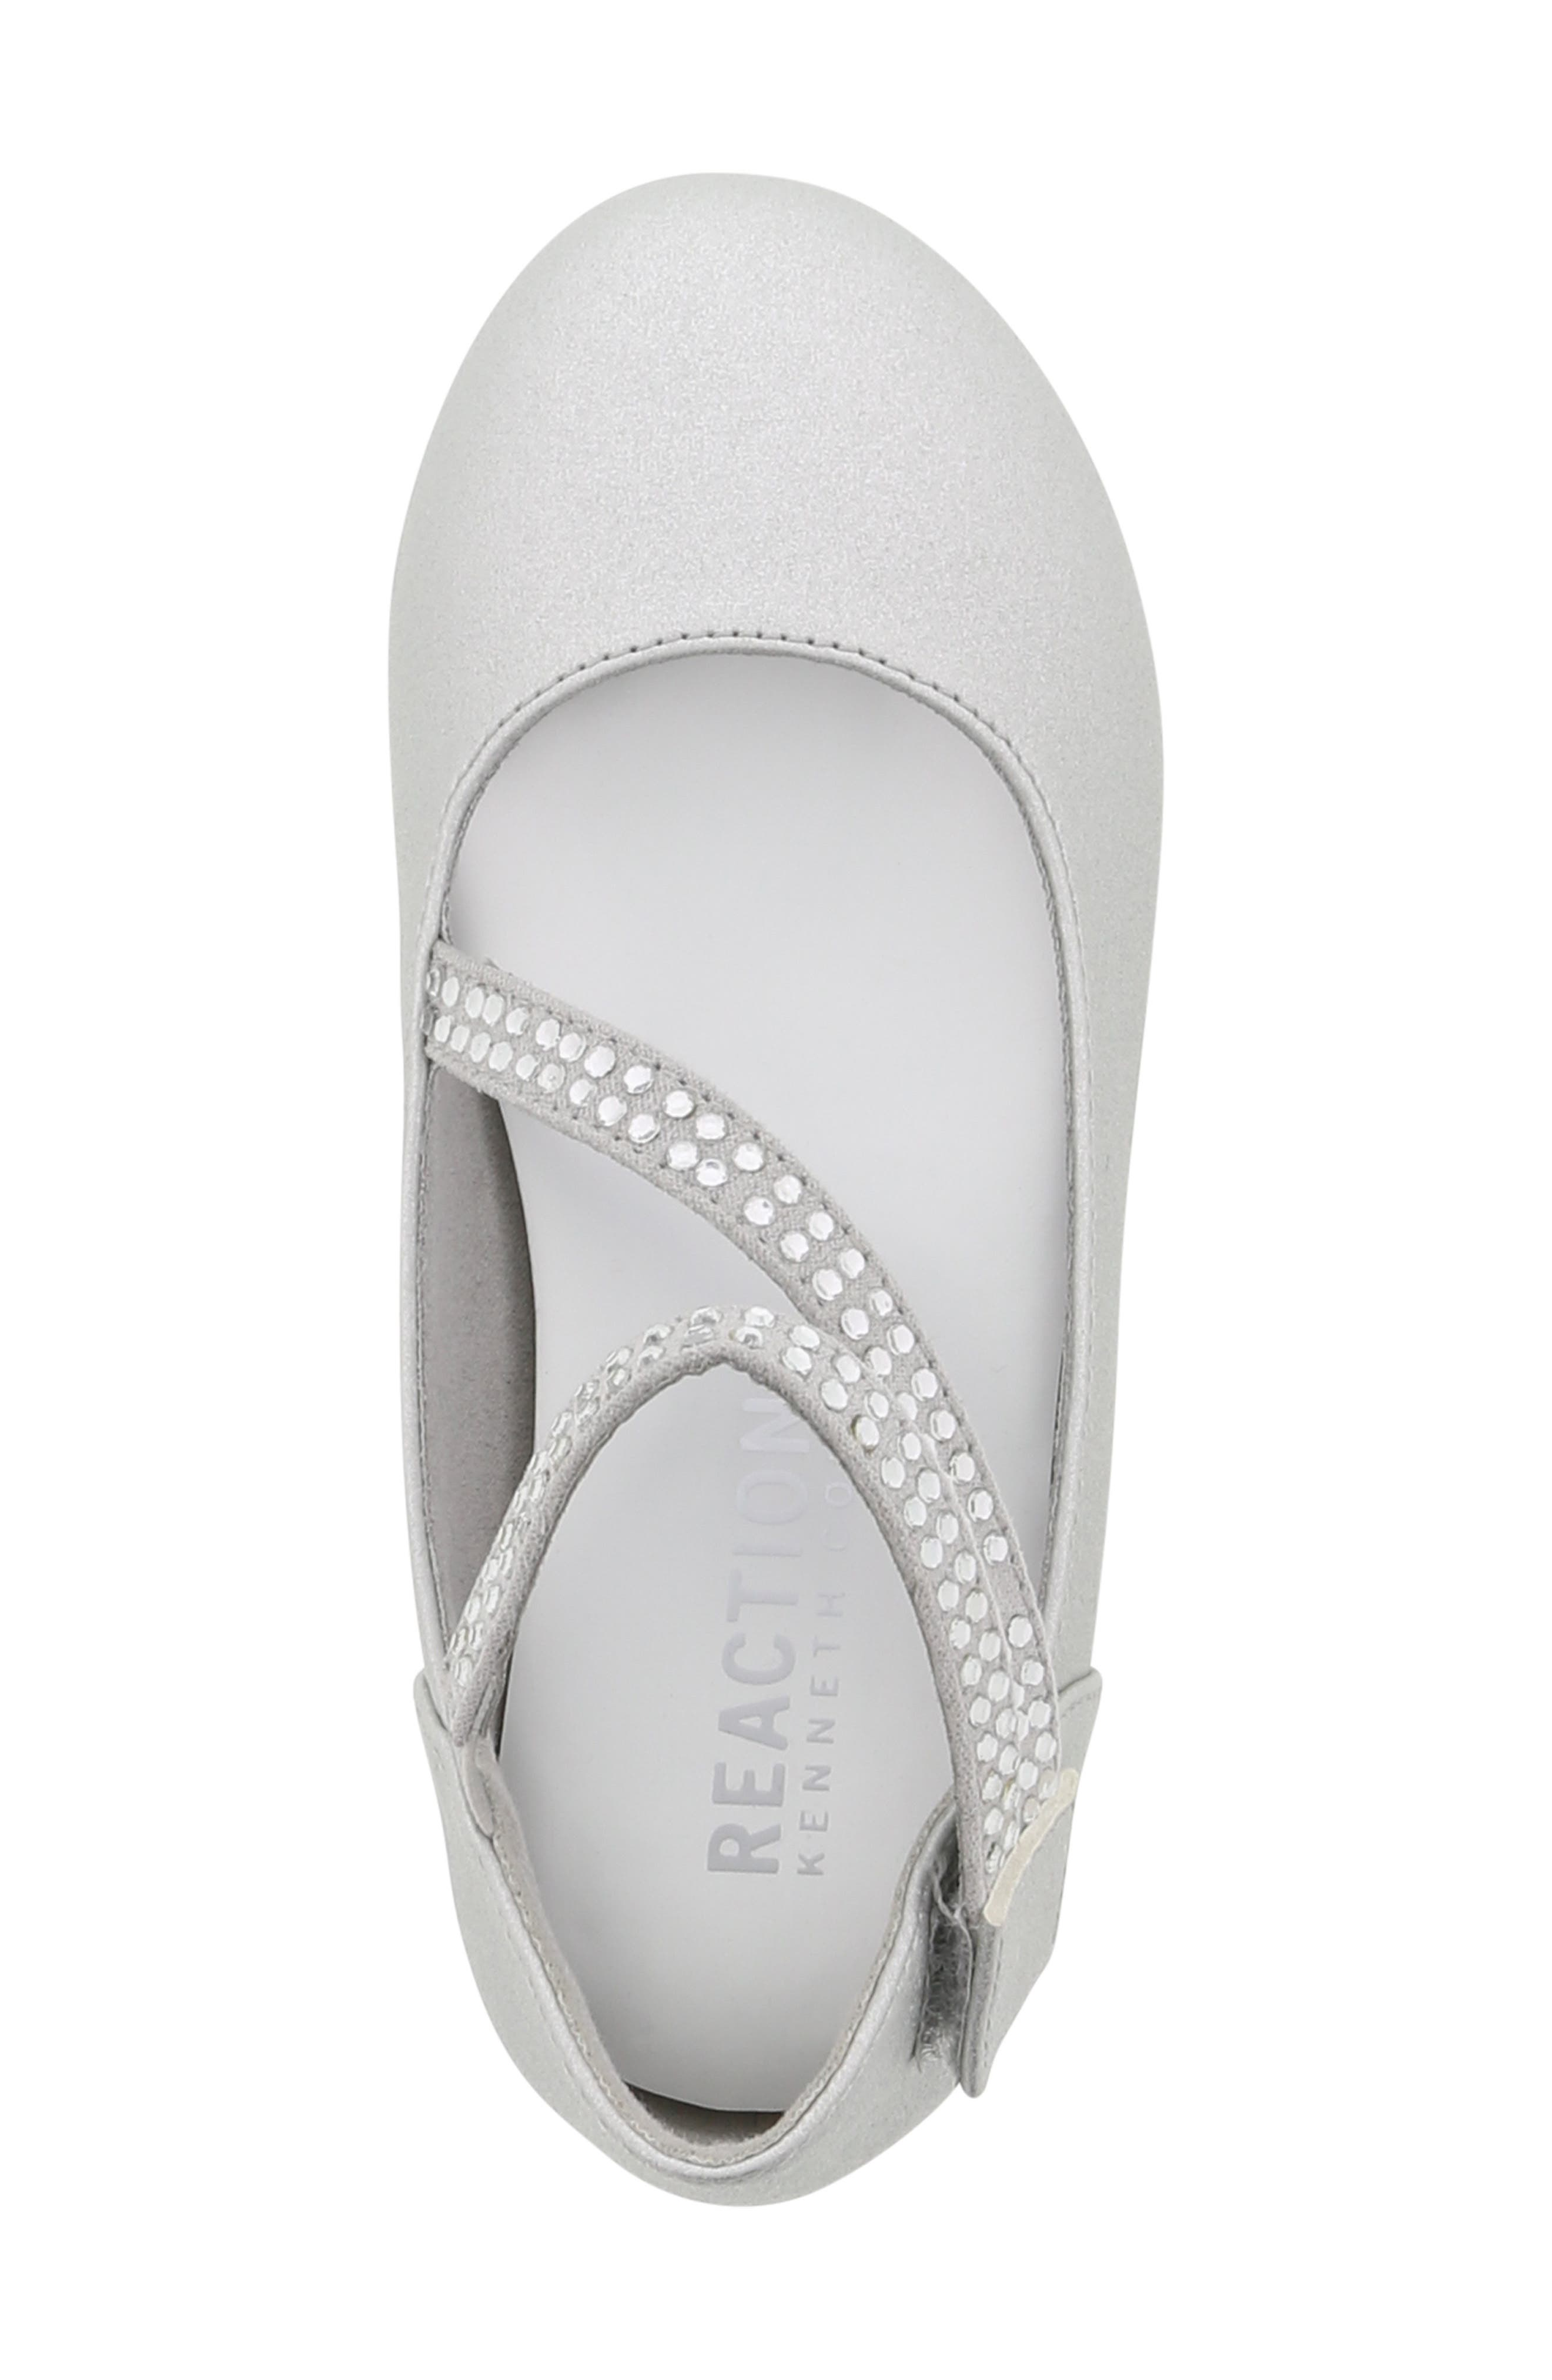 REACTION KENNETH COLE, Tap Lily-T Embellished Flat, Alternate thumbnail 5, color, SILVER